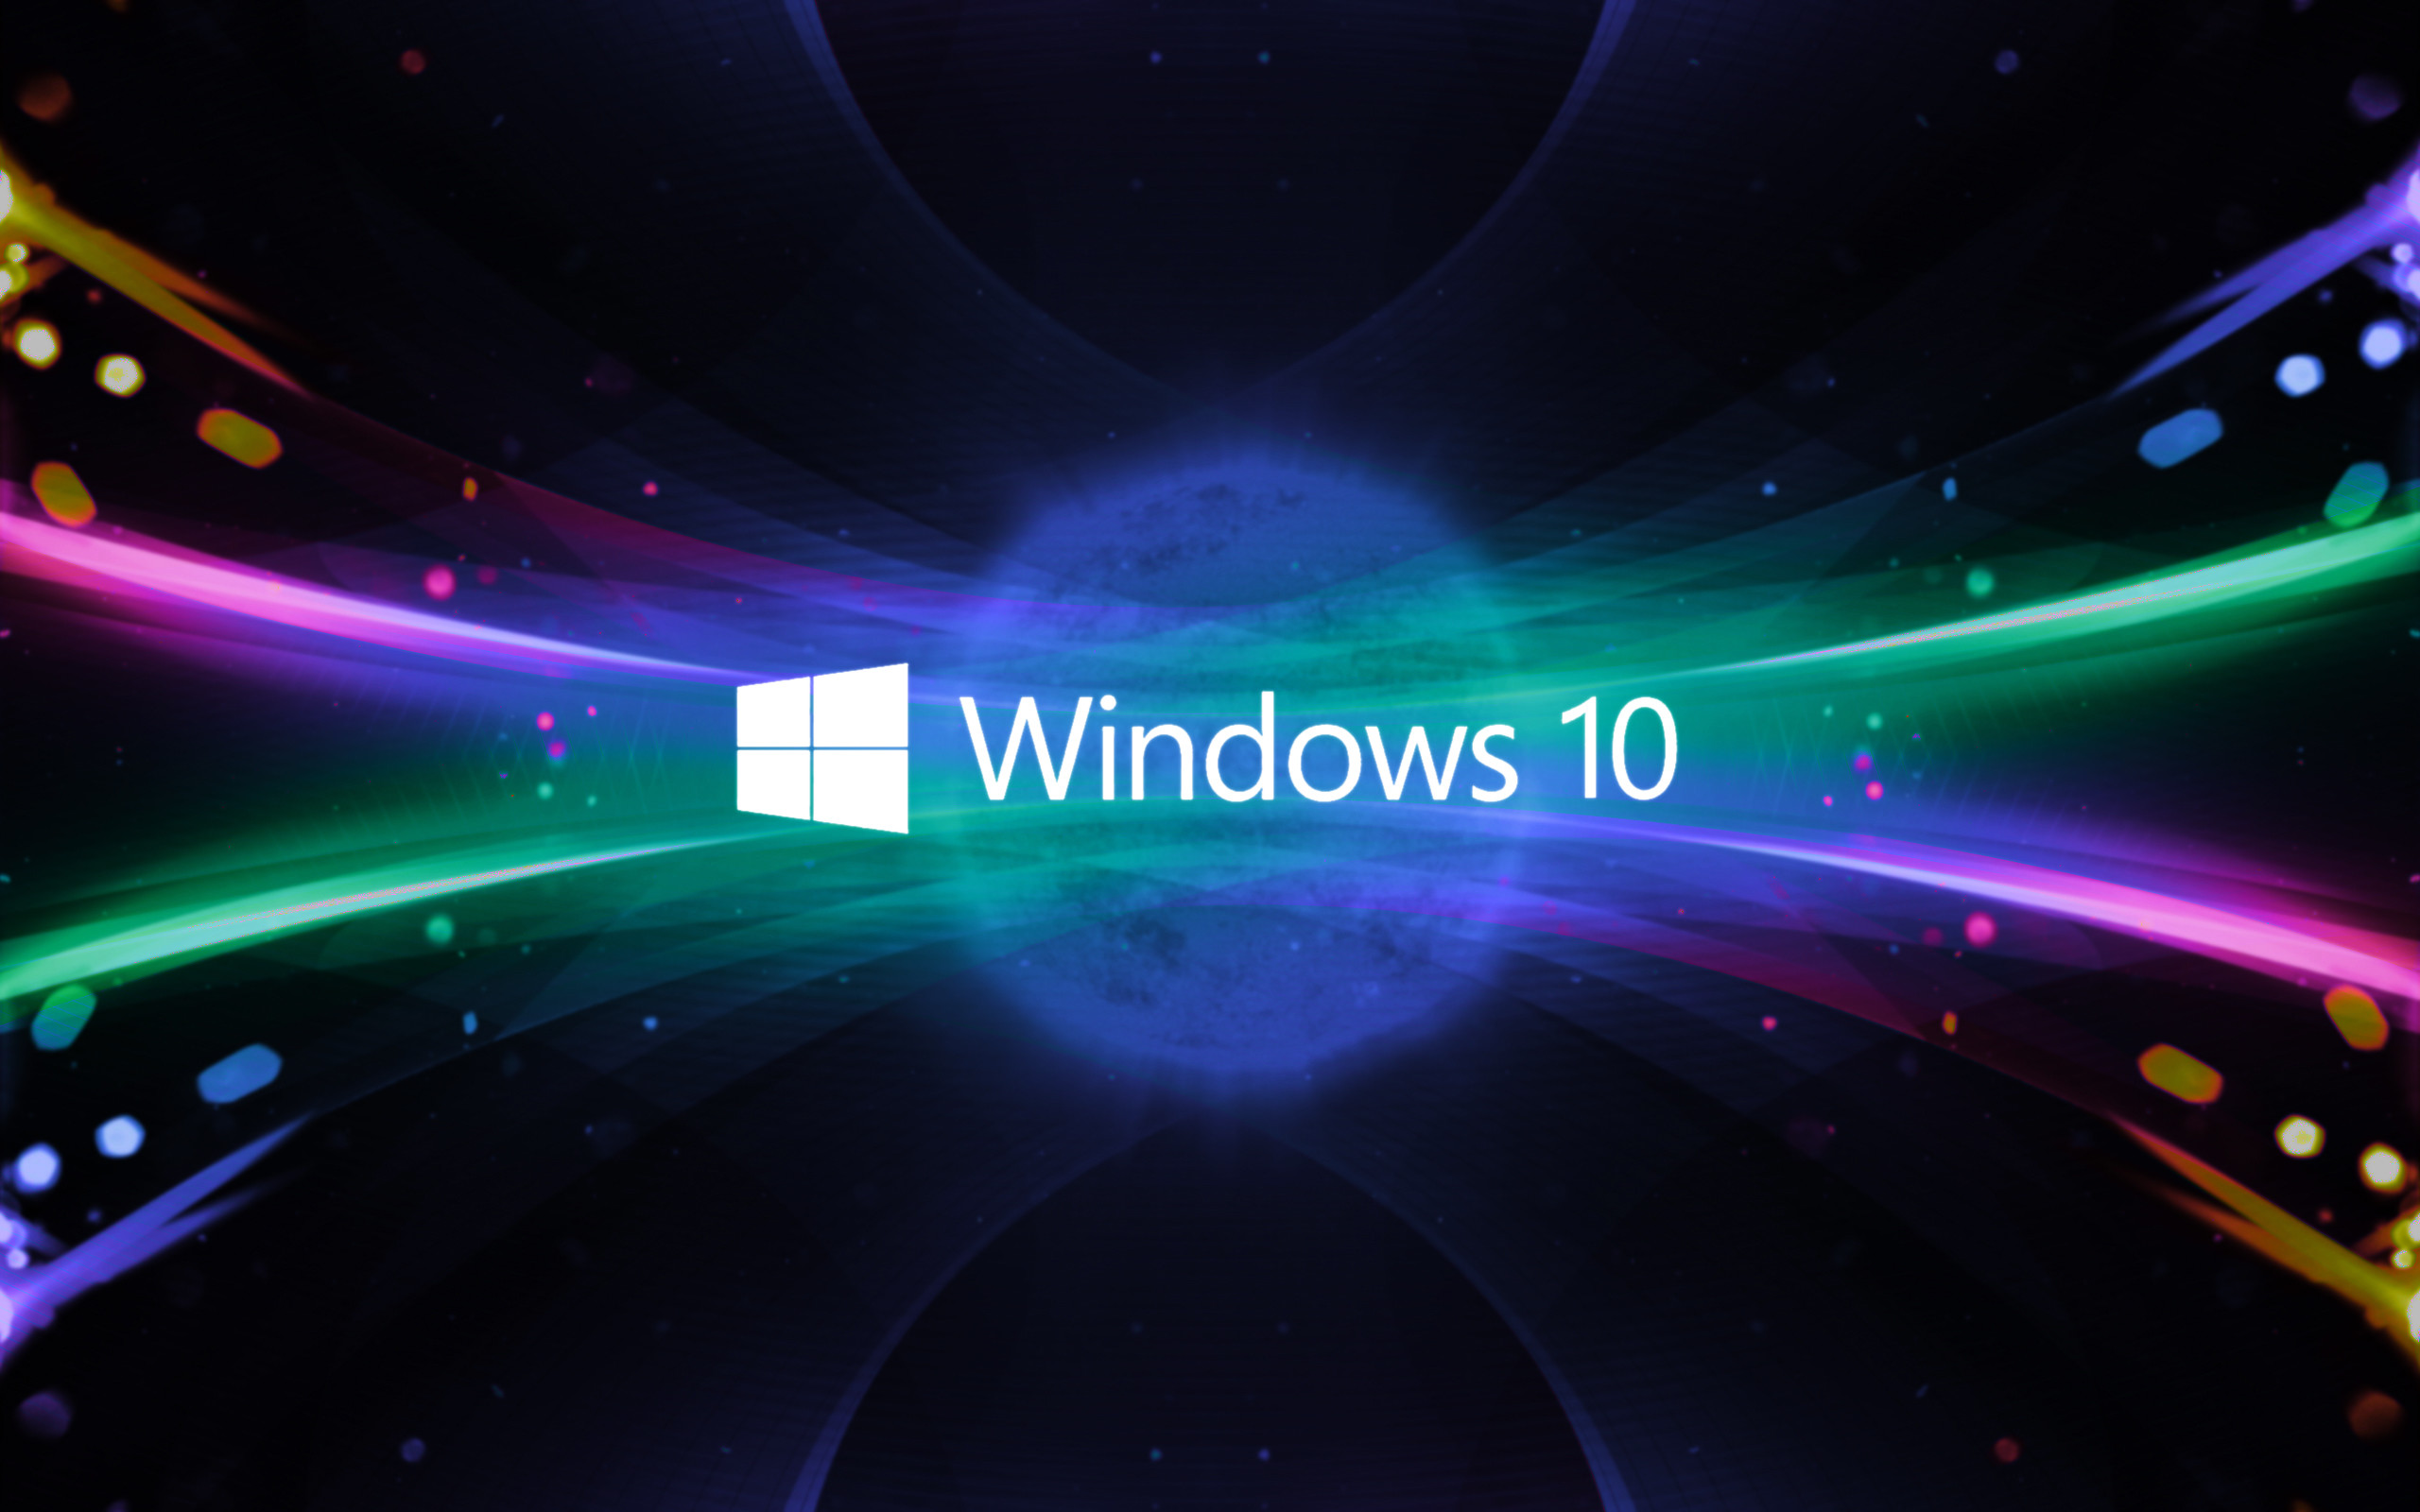 2560x1600 Windows 8.1 Wallpapers